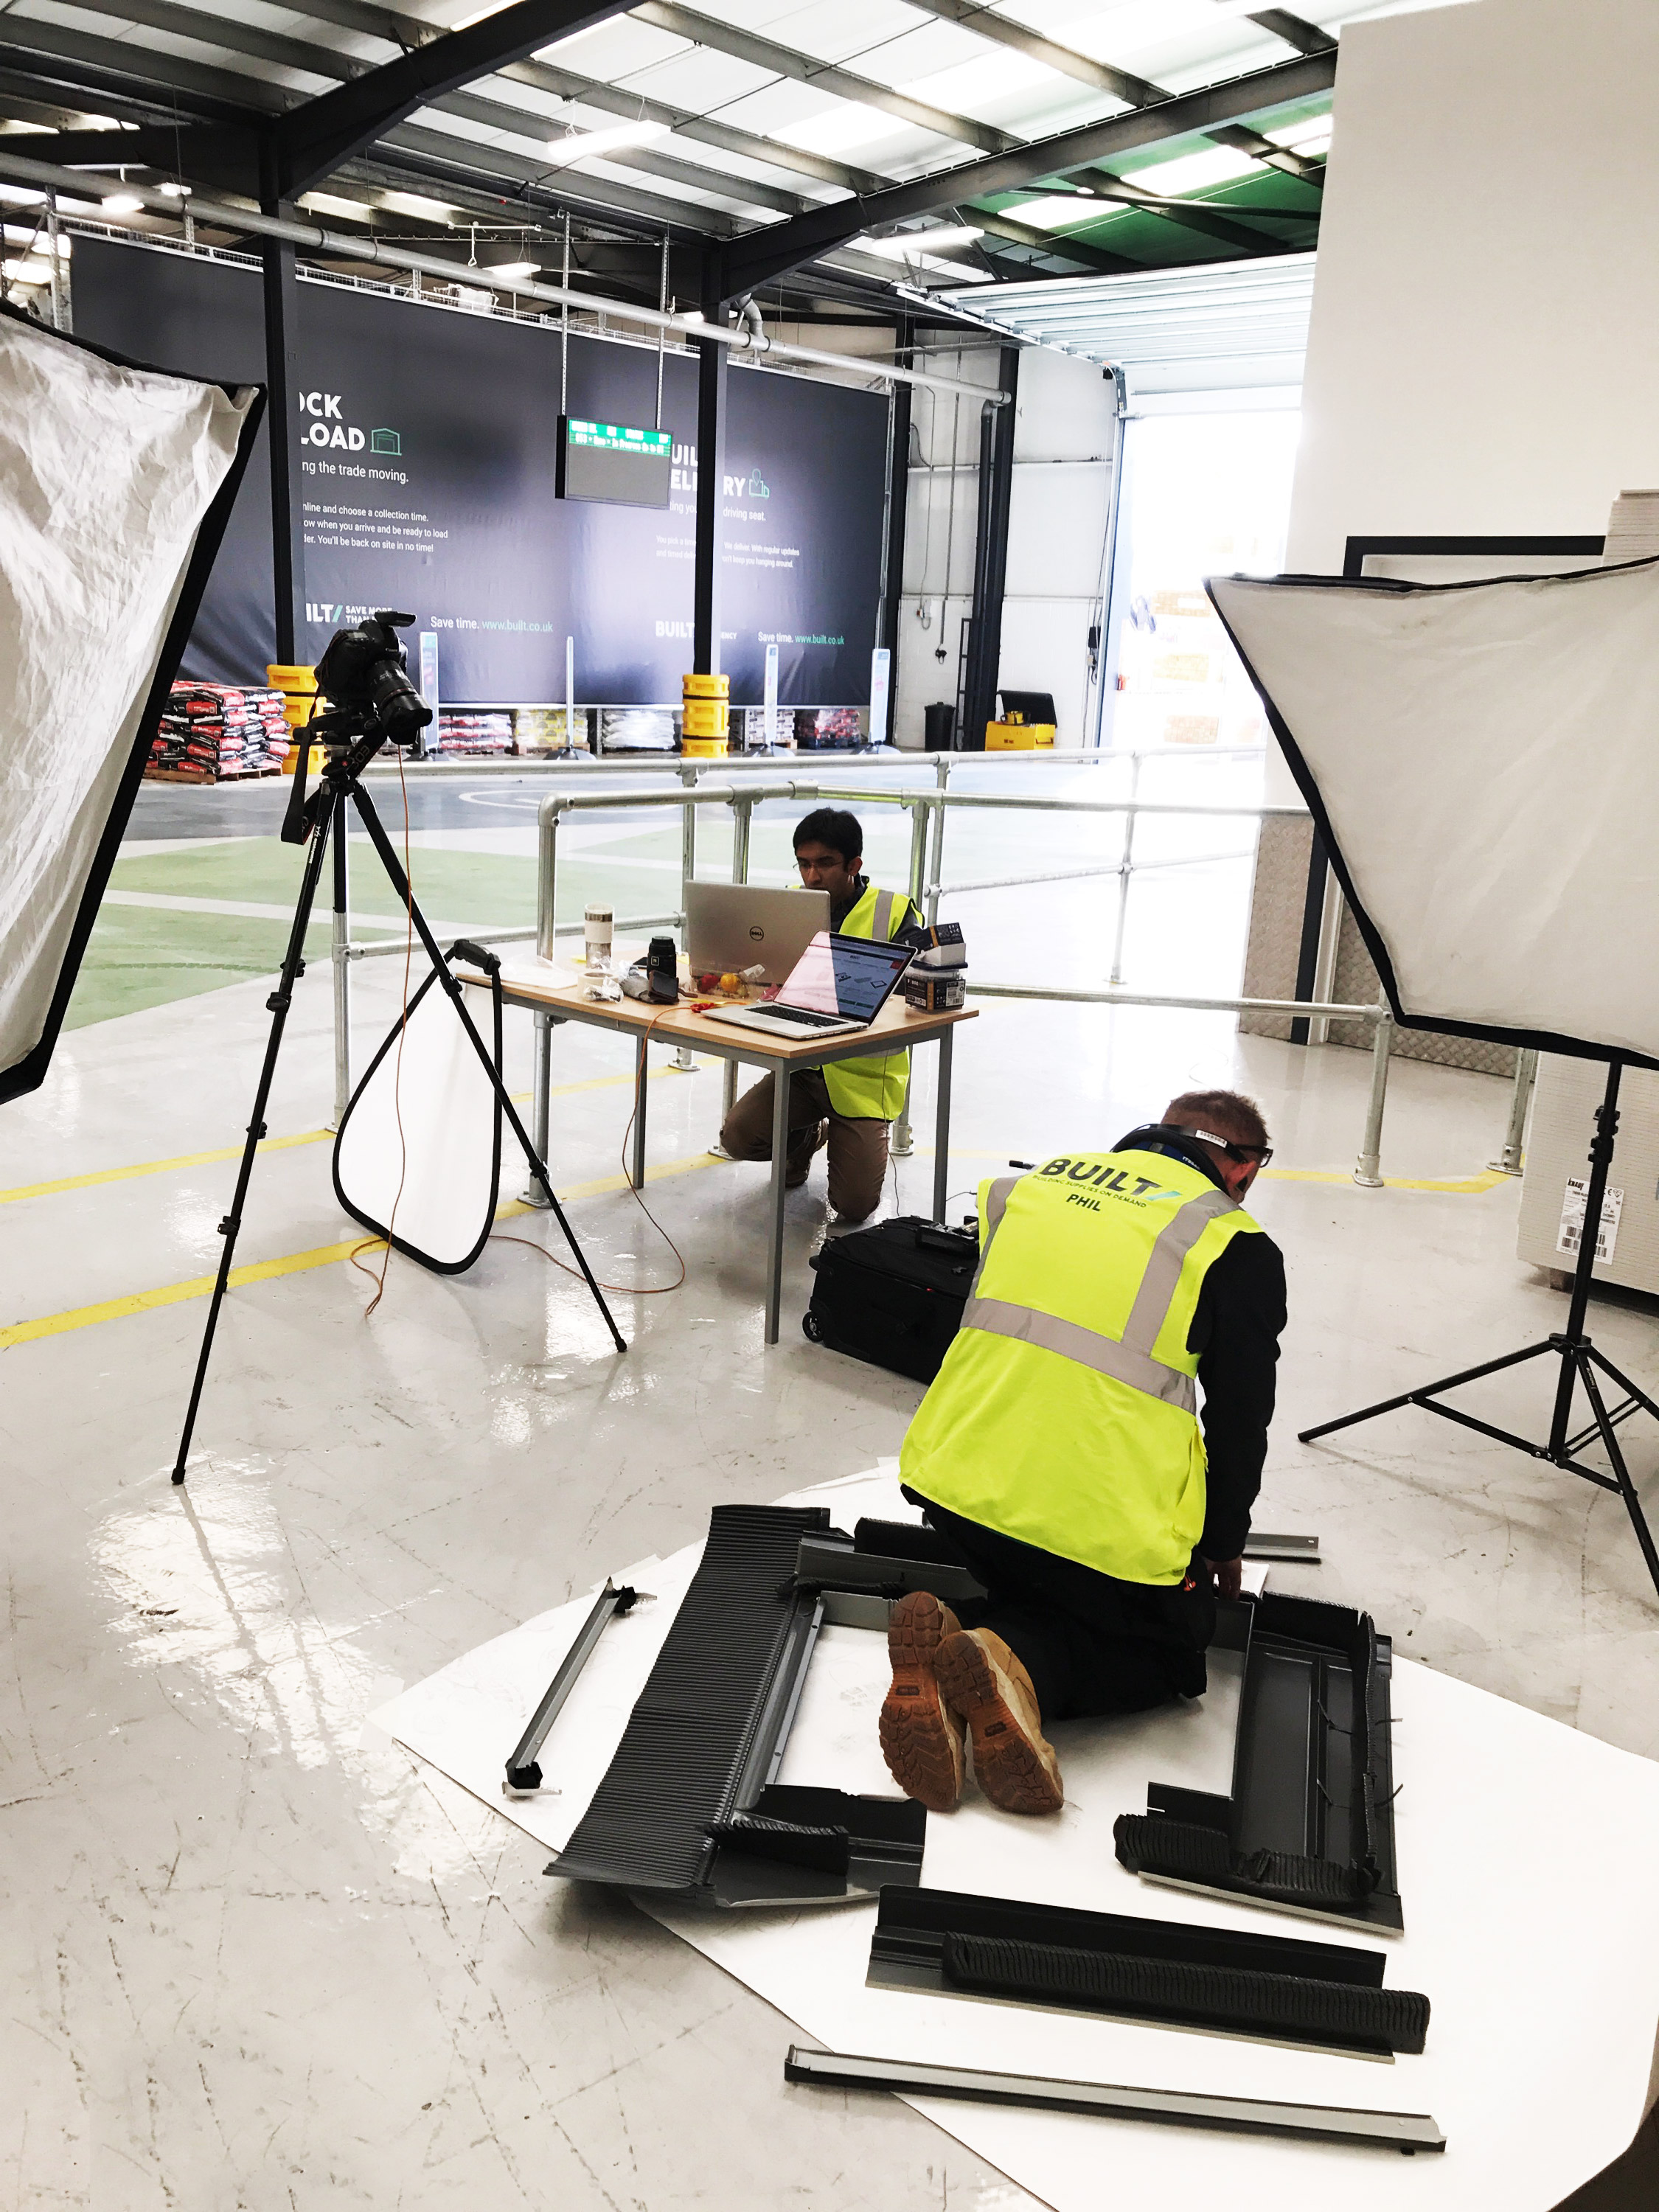 Products being shot on site in Birmingham just prior to launch.